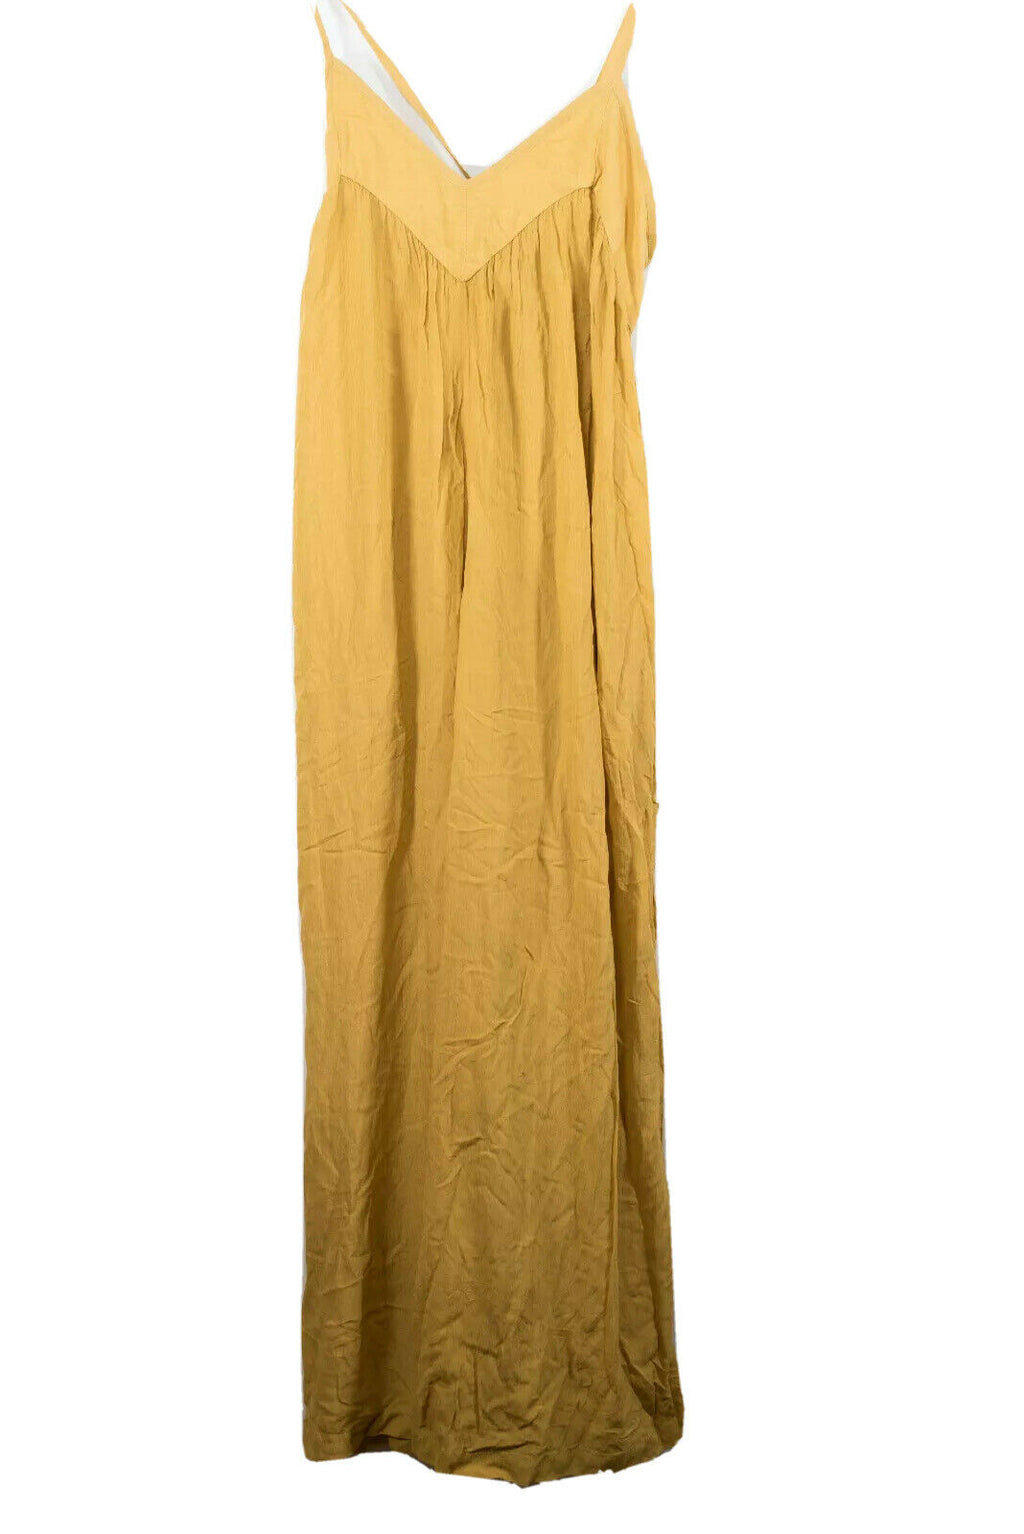 Indah Womens Size XS Yellow Jumpsuit Wide Leg Boho Pantsuit Playsuit Tank Romper